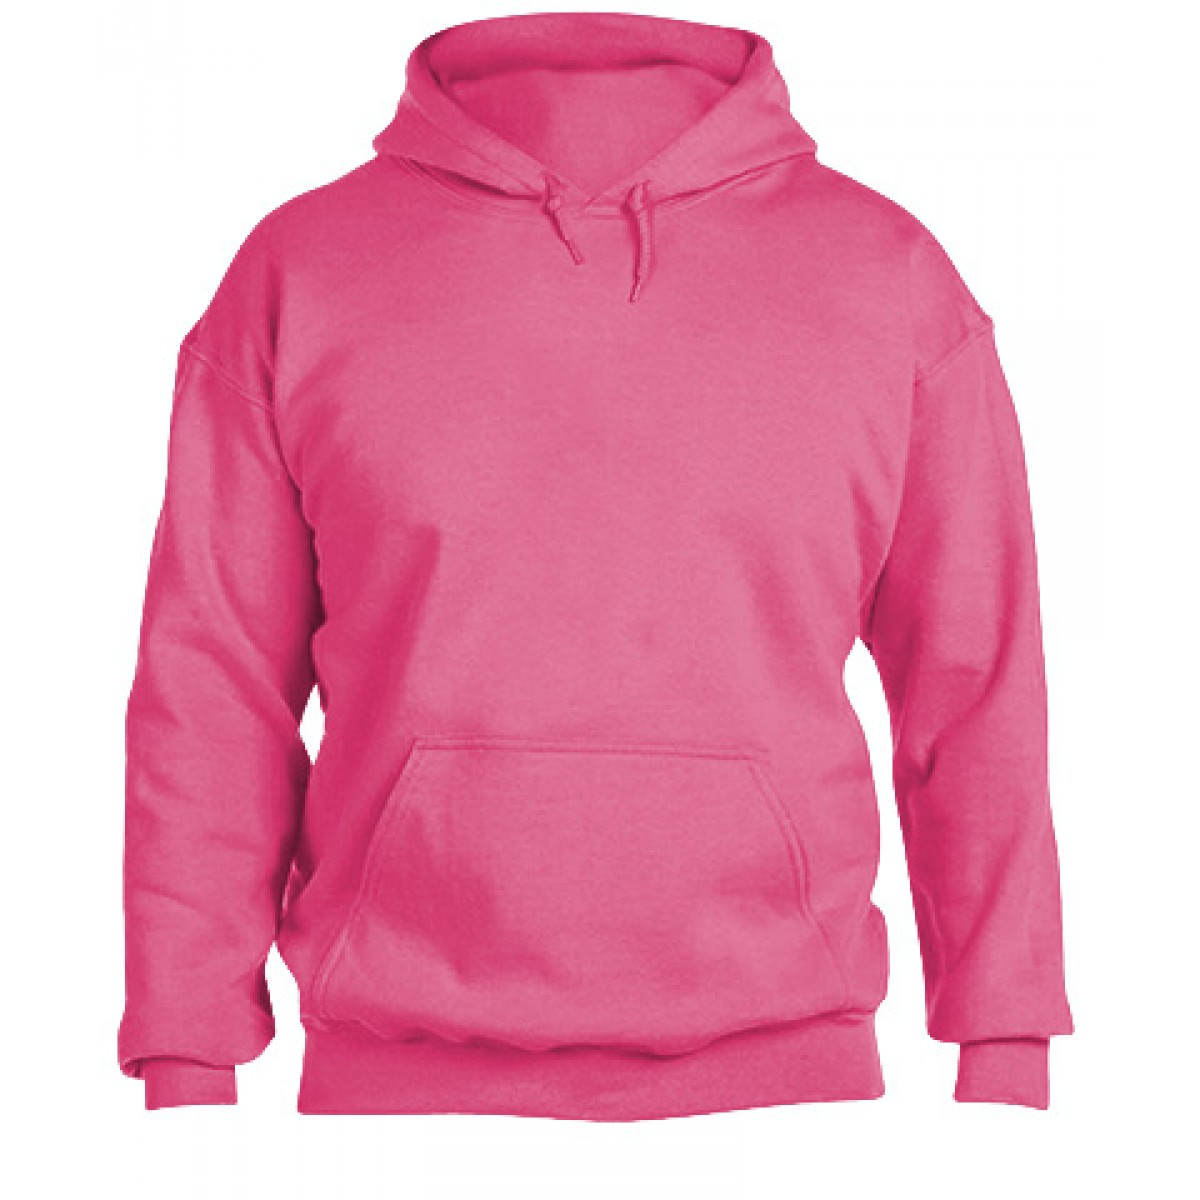 Hooded Sweatshirt 50/50 Heavy Safety Pink-Safety Pink-S